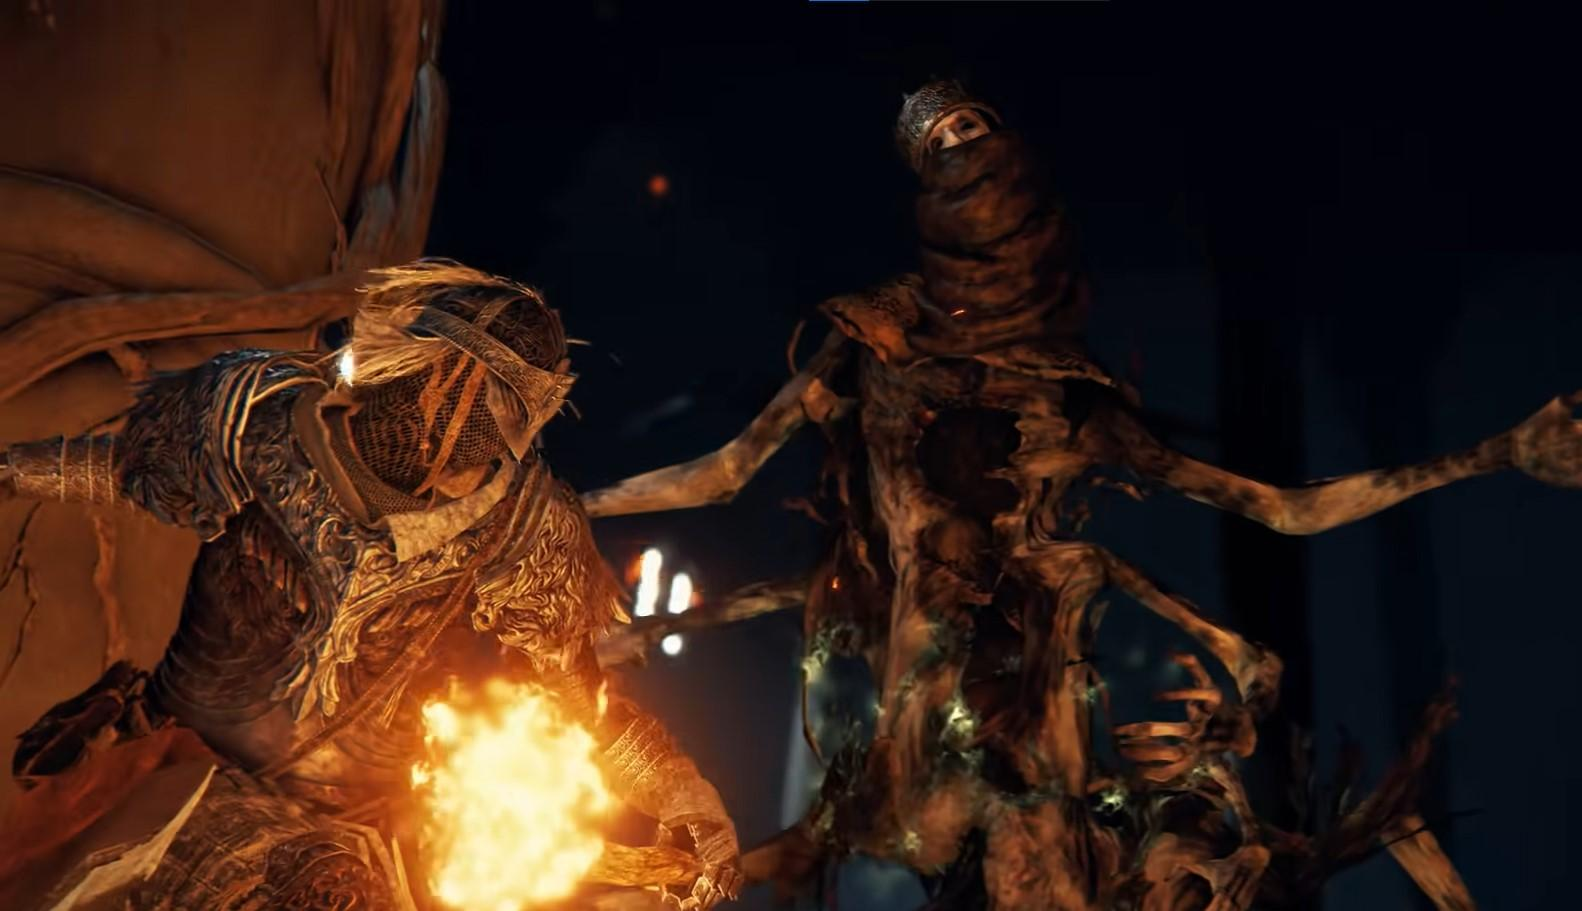 Elden Ring features From Software's signature style of creepy creatures